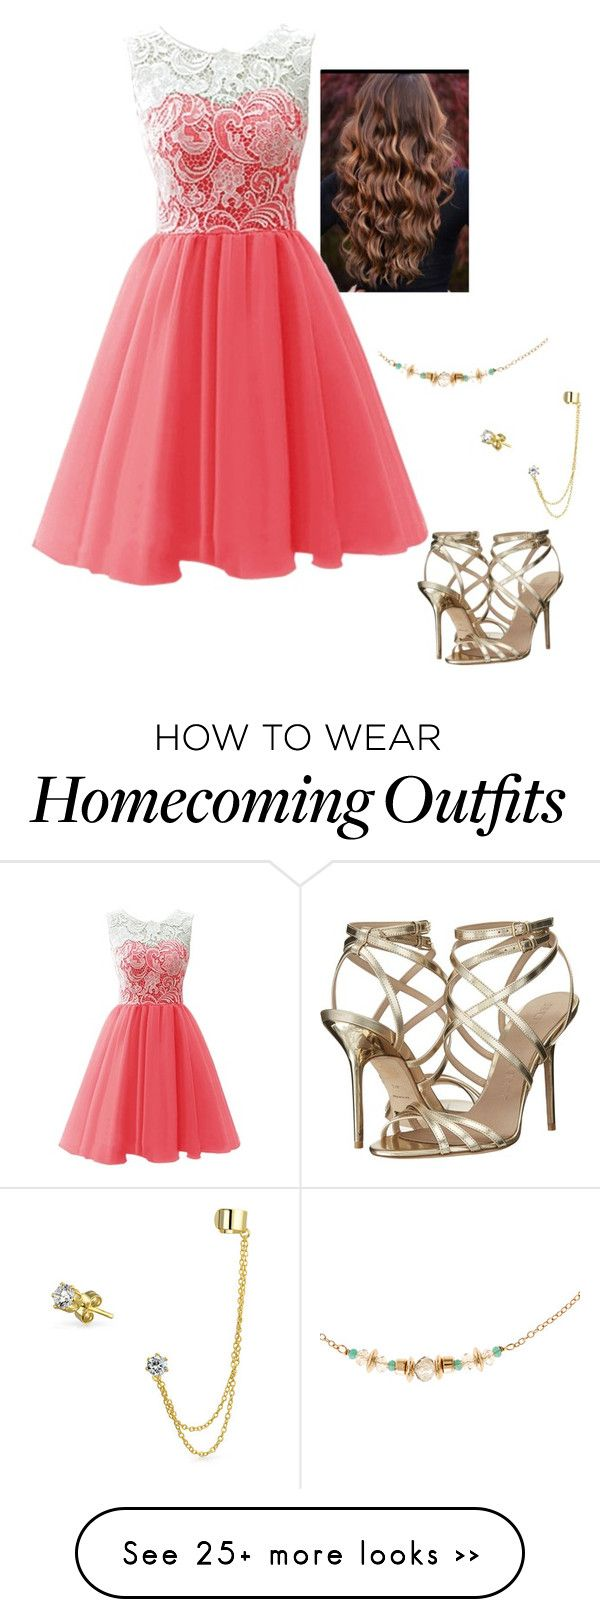 """Homecoming 2k15"" by jennica-1 on Polyvore featuring Burberry, Bling Jewelry and Accessorize"